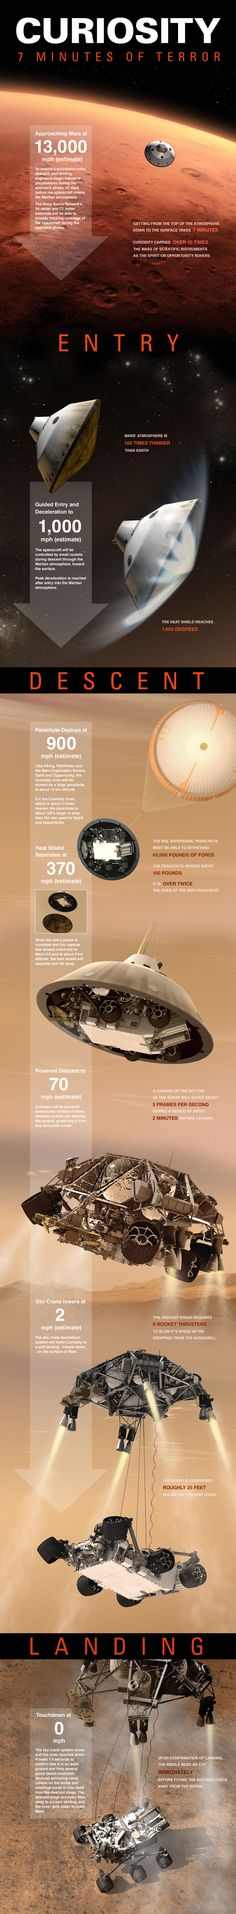 "all about ""Curiosity"" rover - Infographic"